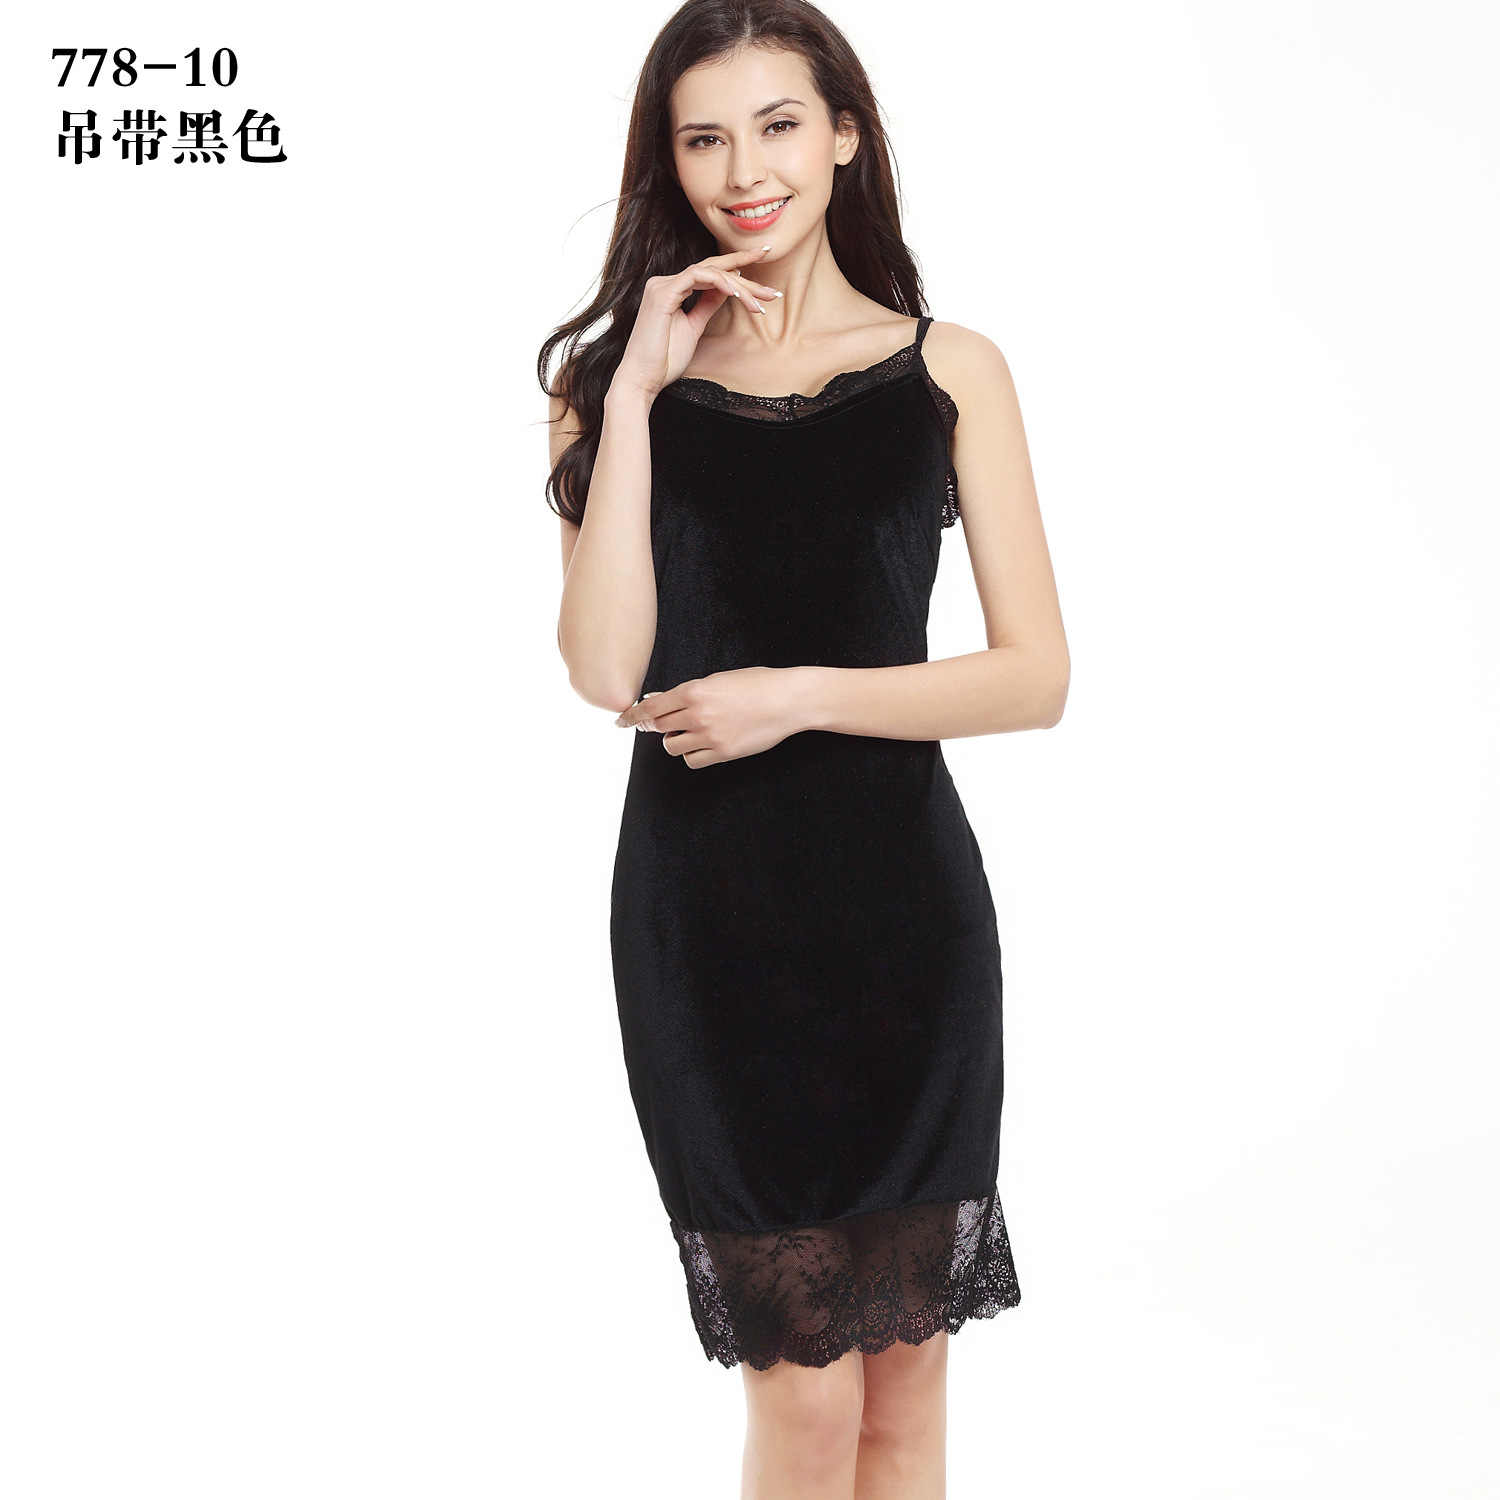 a6f0331e83fa0 ... Hot sale women dresses new arrival sexy lace stitching swan gold velvet  harness dress ebay bag